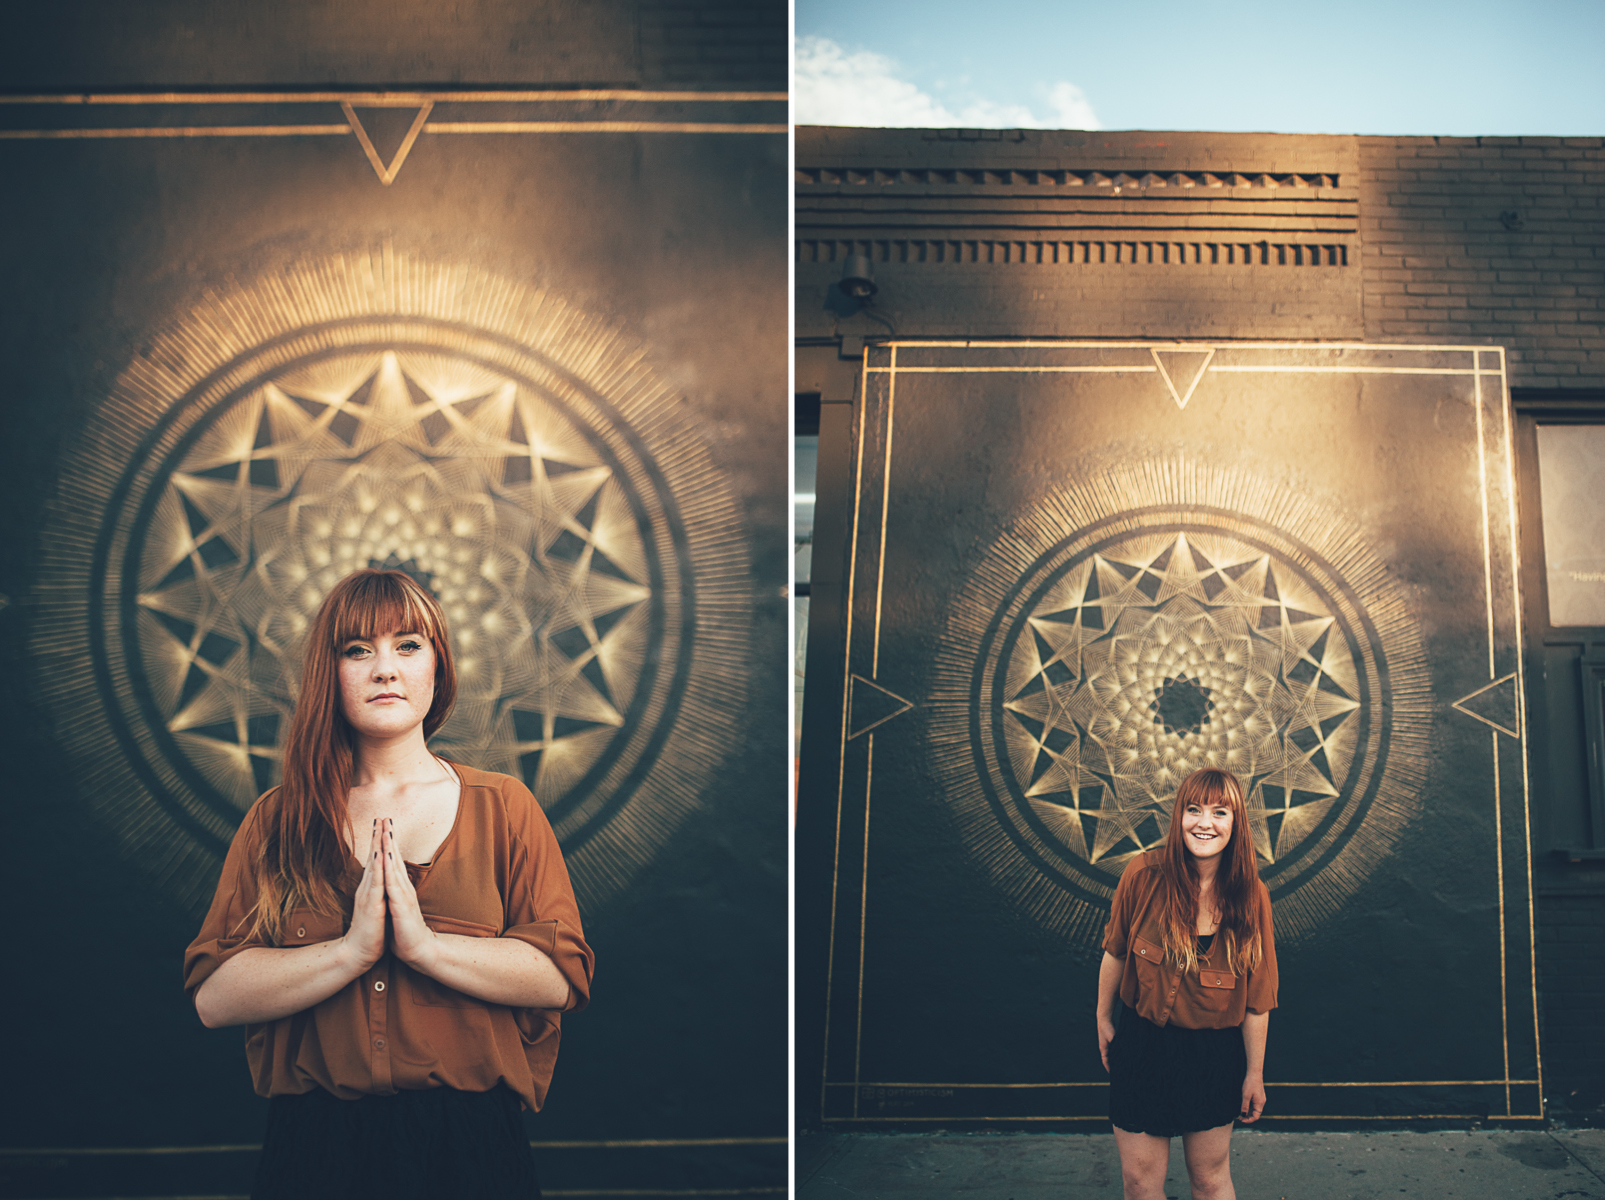 Gorgeous urban high school senior photos by Tara Polly Photography